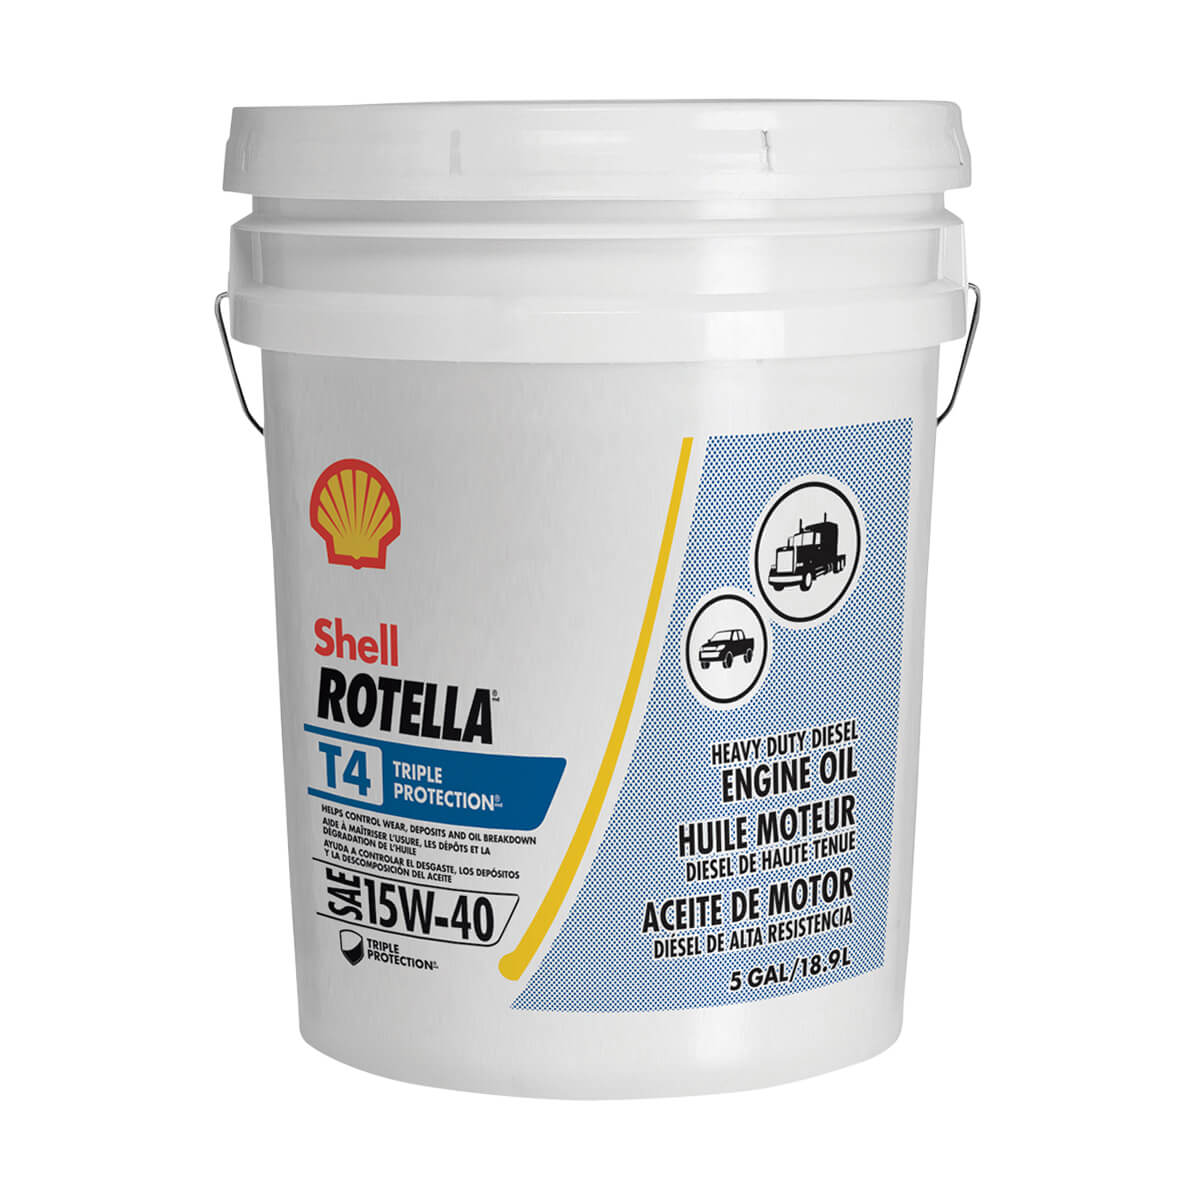 Shell Rotella T4 Triple Protection 15W-40 - 18.9 L